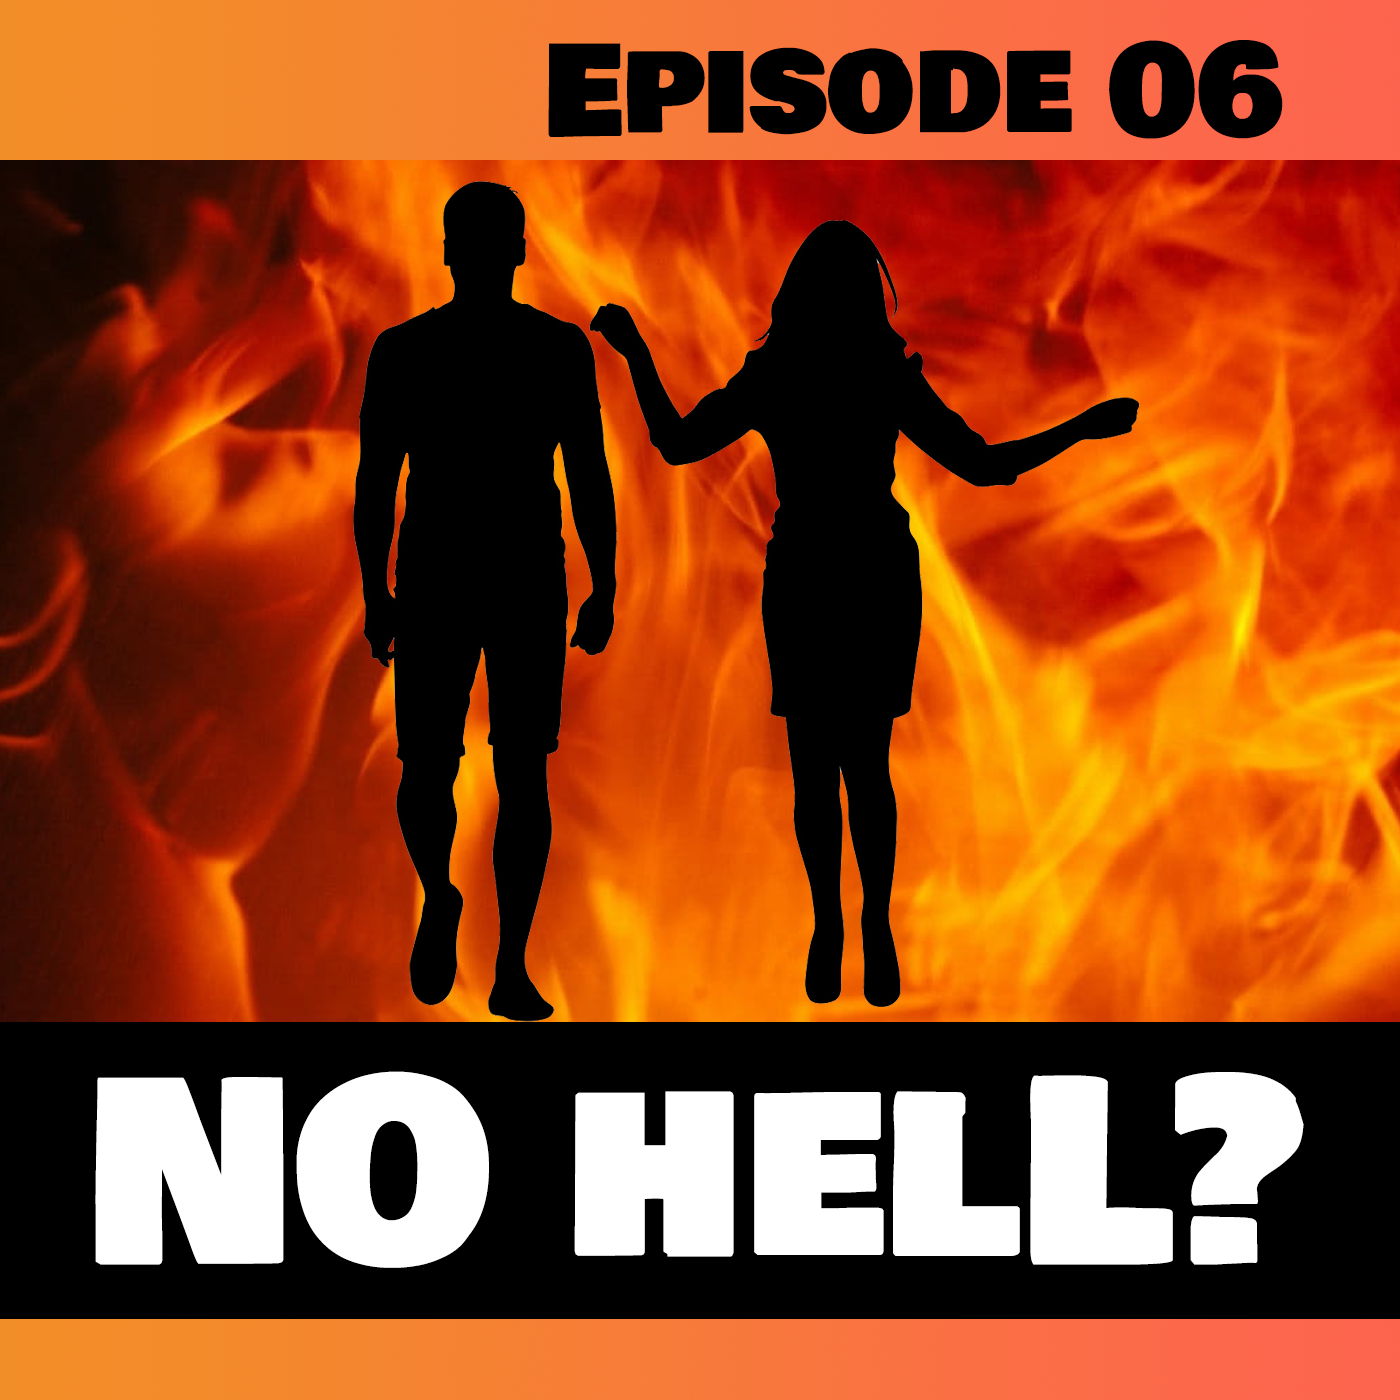 🔥🔥 No Hell? Would you Still Follow Jesus? 🔥🔥